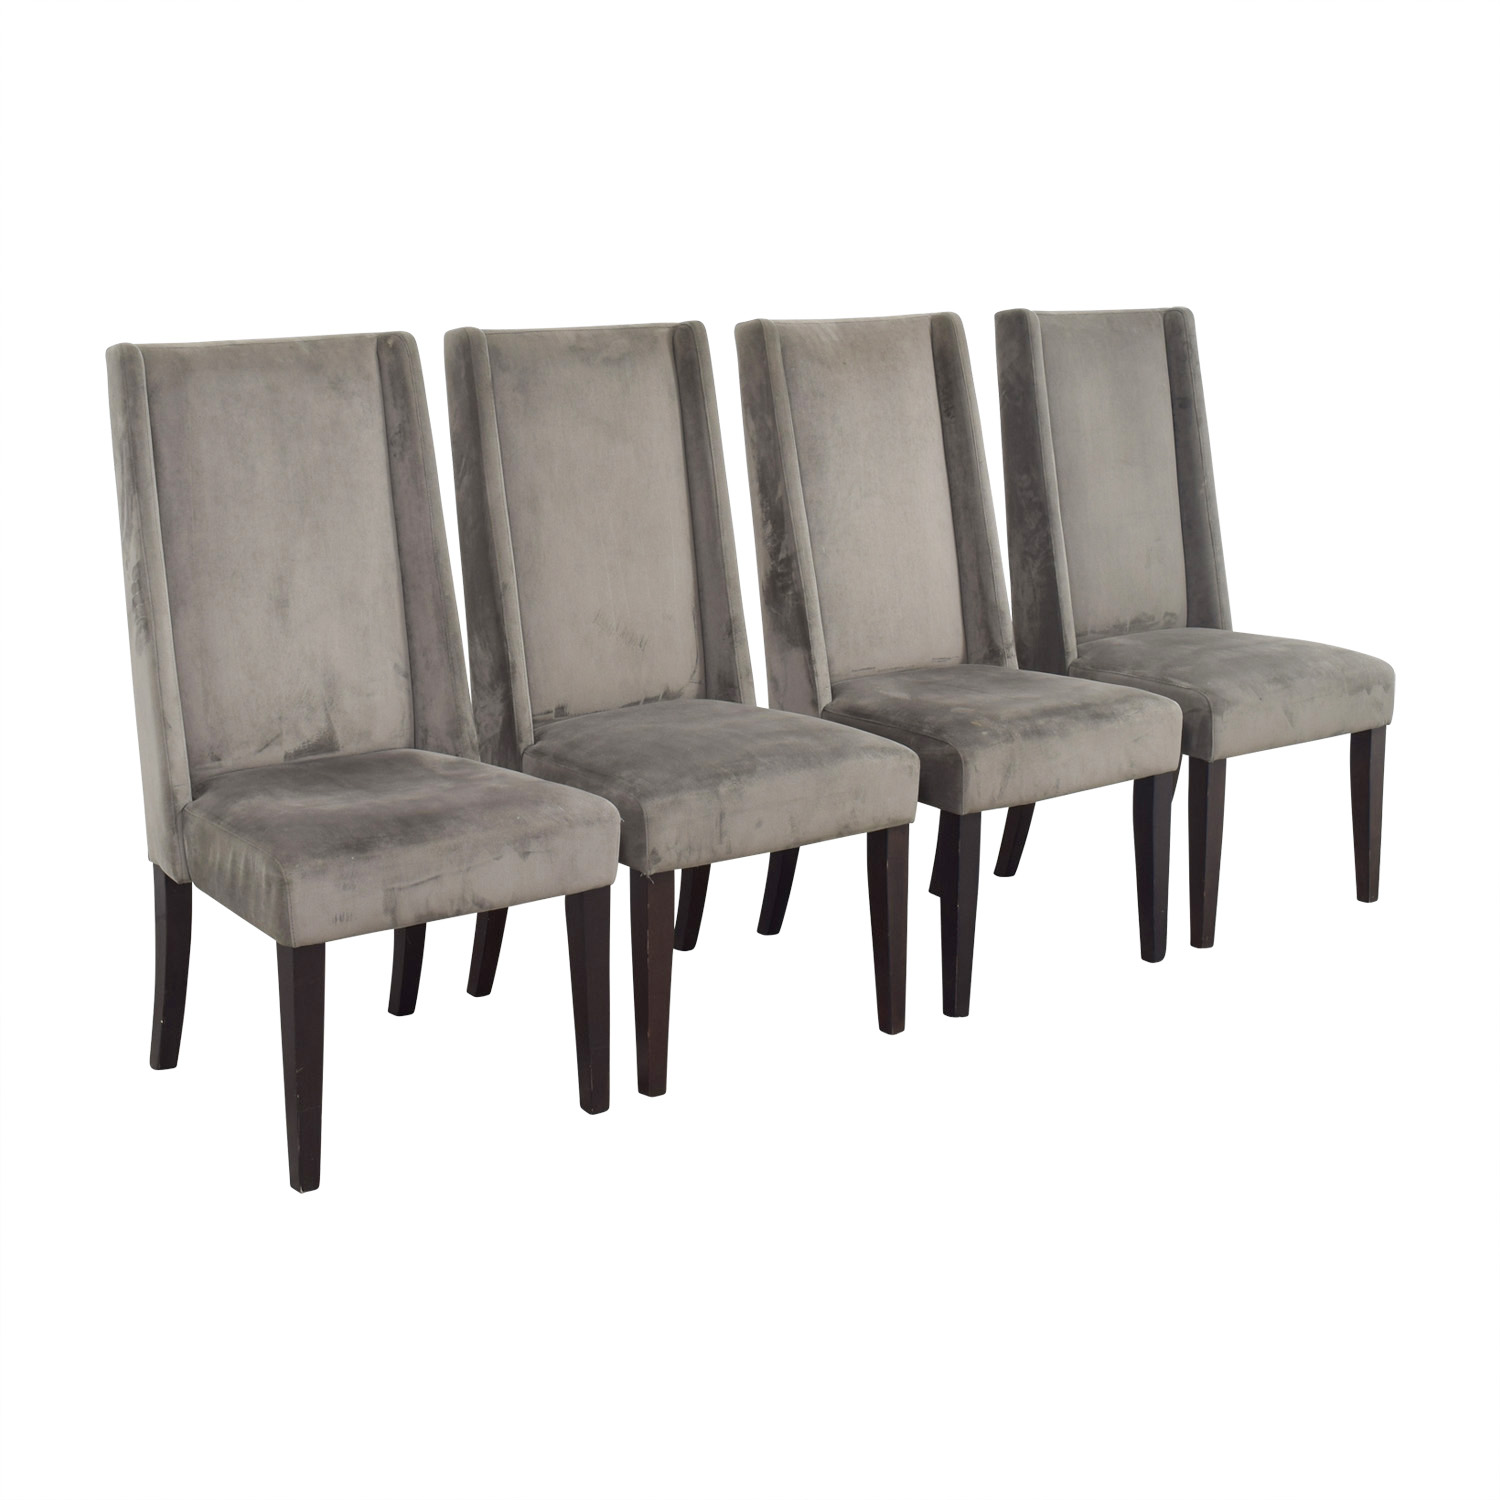 West Elm West Elm Velvet Dining Chairs / Chairs